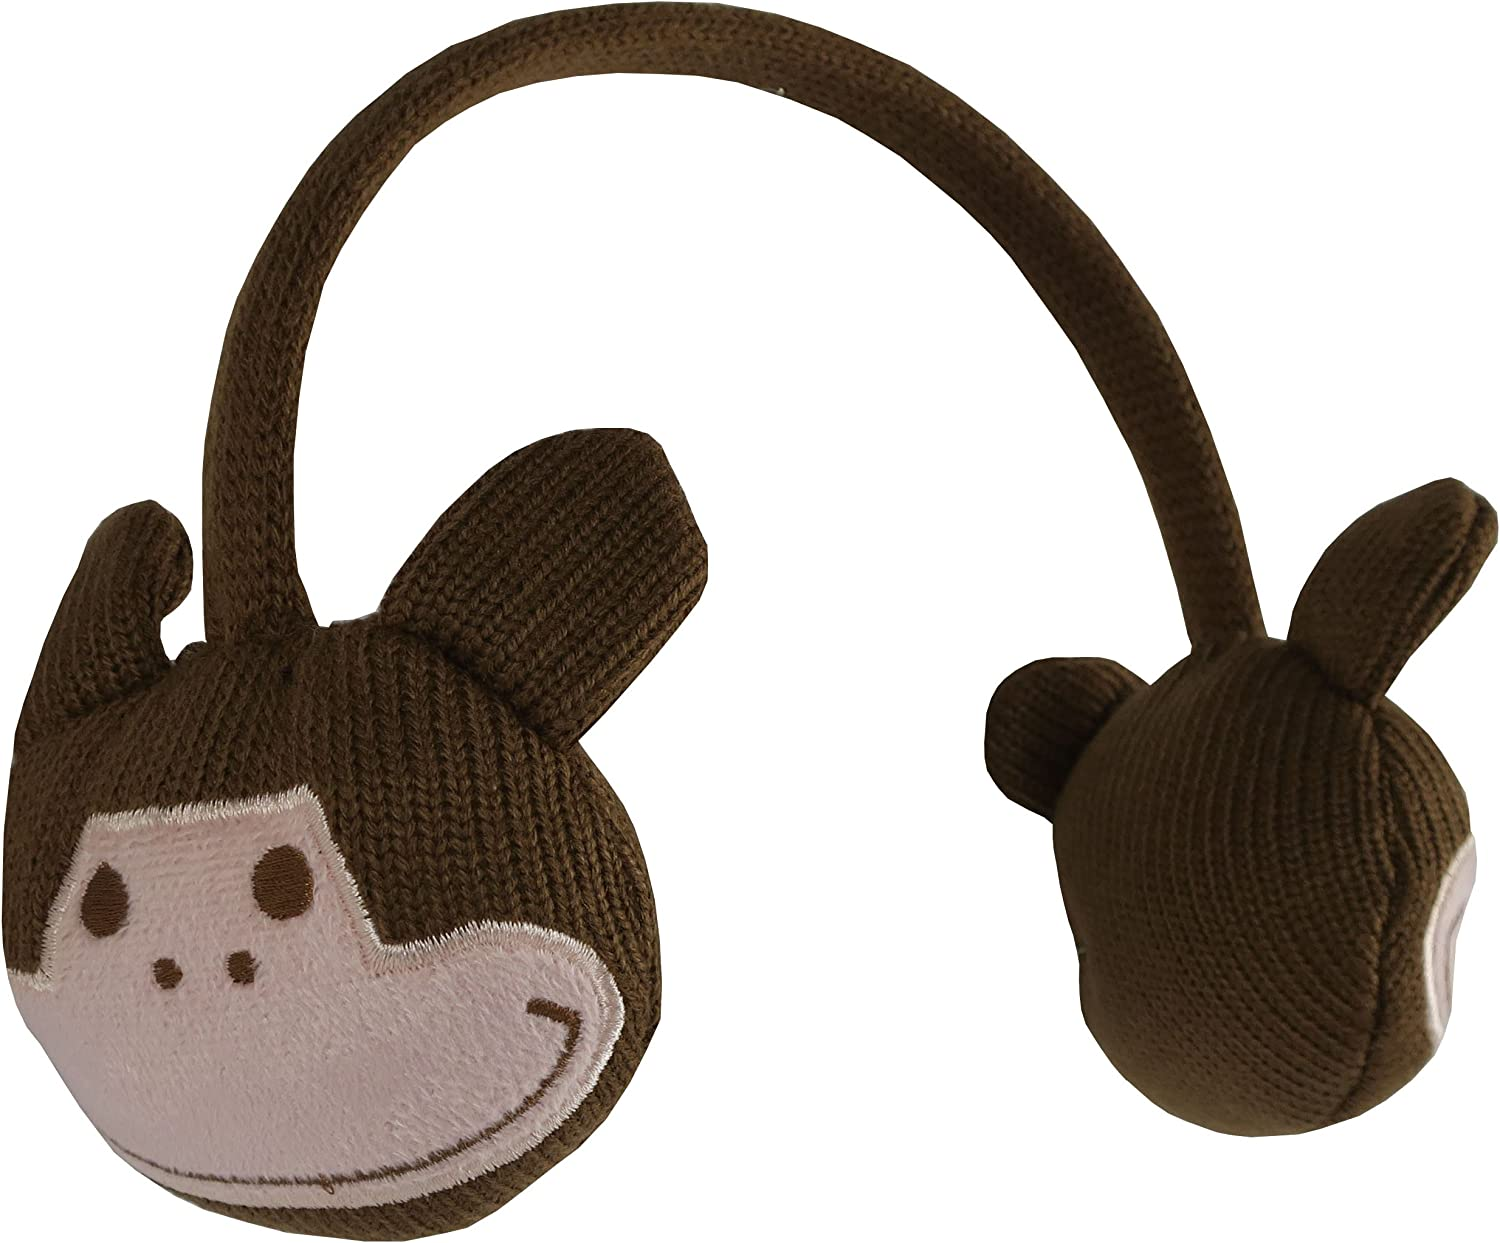 N'Ice Caps Max New color 52% OFF Kids Girls Boys Animal Adjustable Face Earmuff Winter